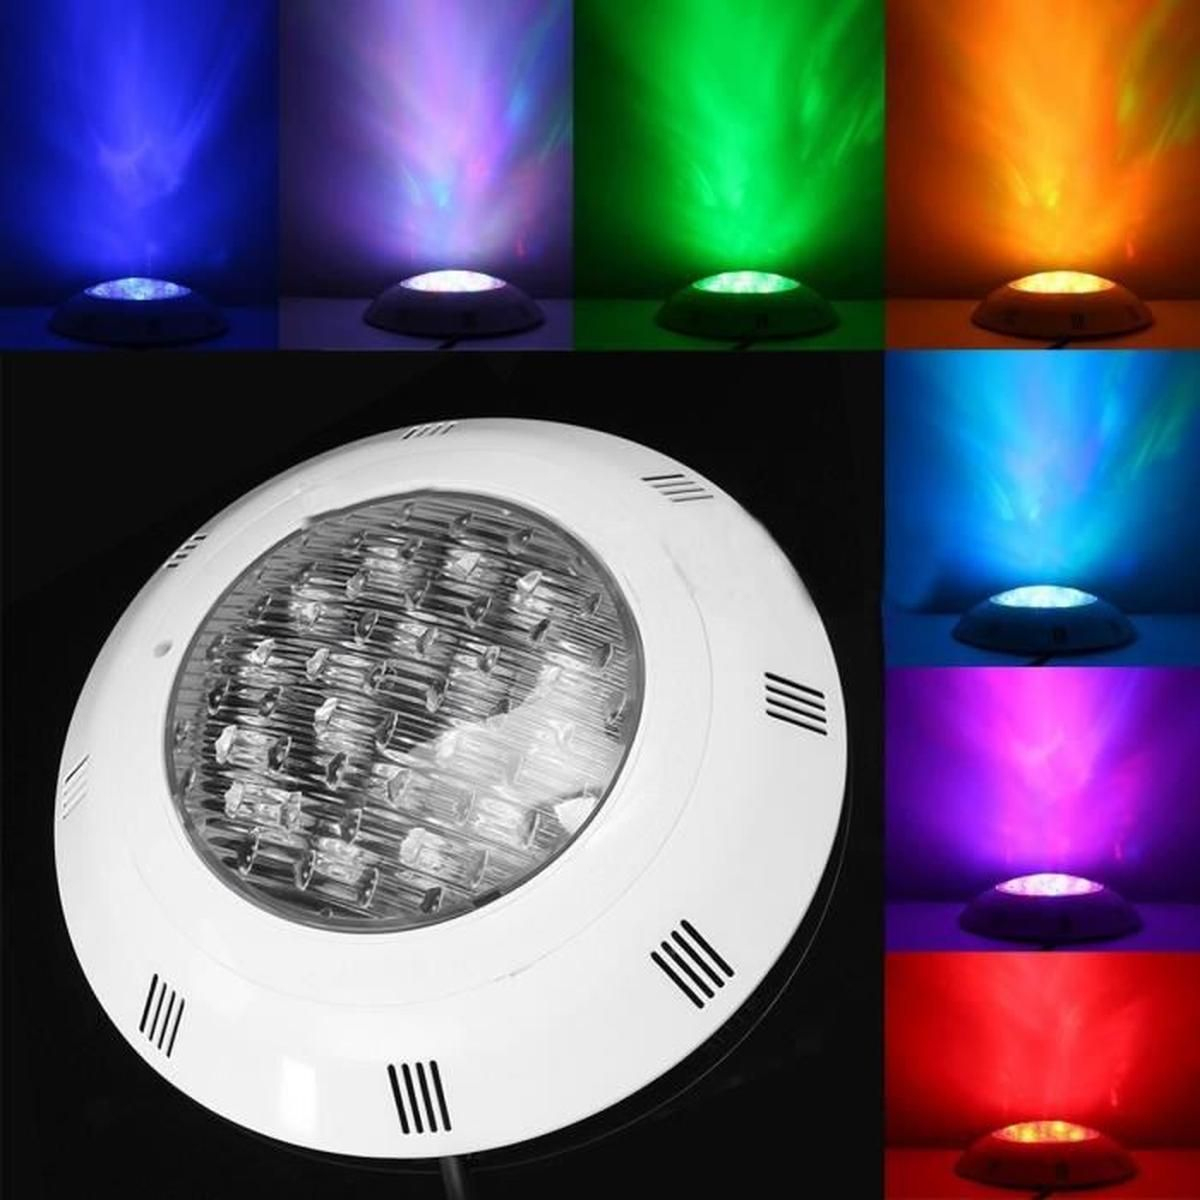 12V 24W Ip68 Piscine Fontaine 7 Colors Led Lumière ... pour Projecteur Led Piscine